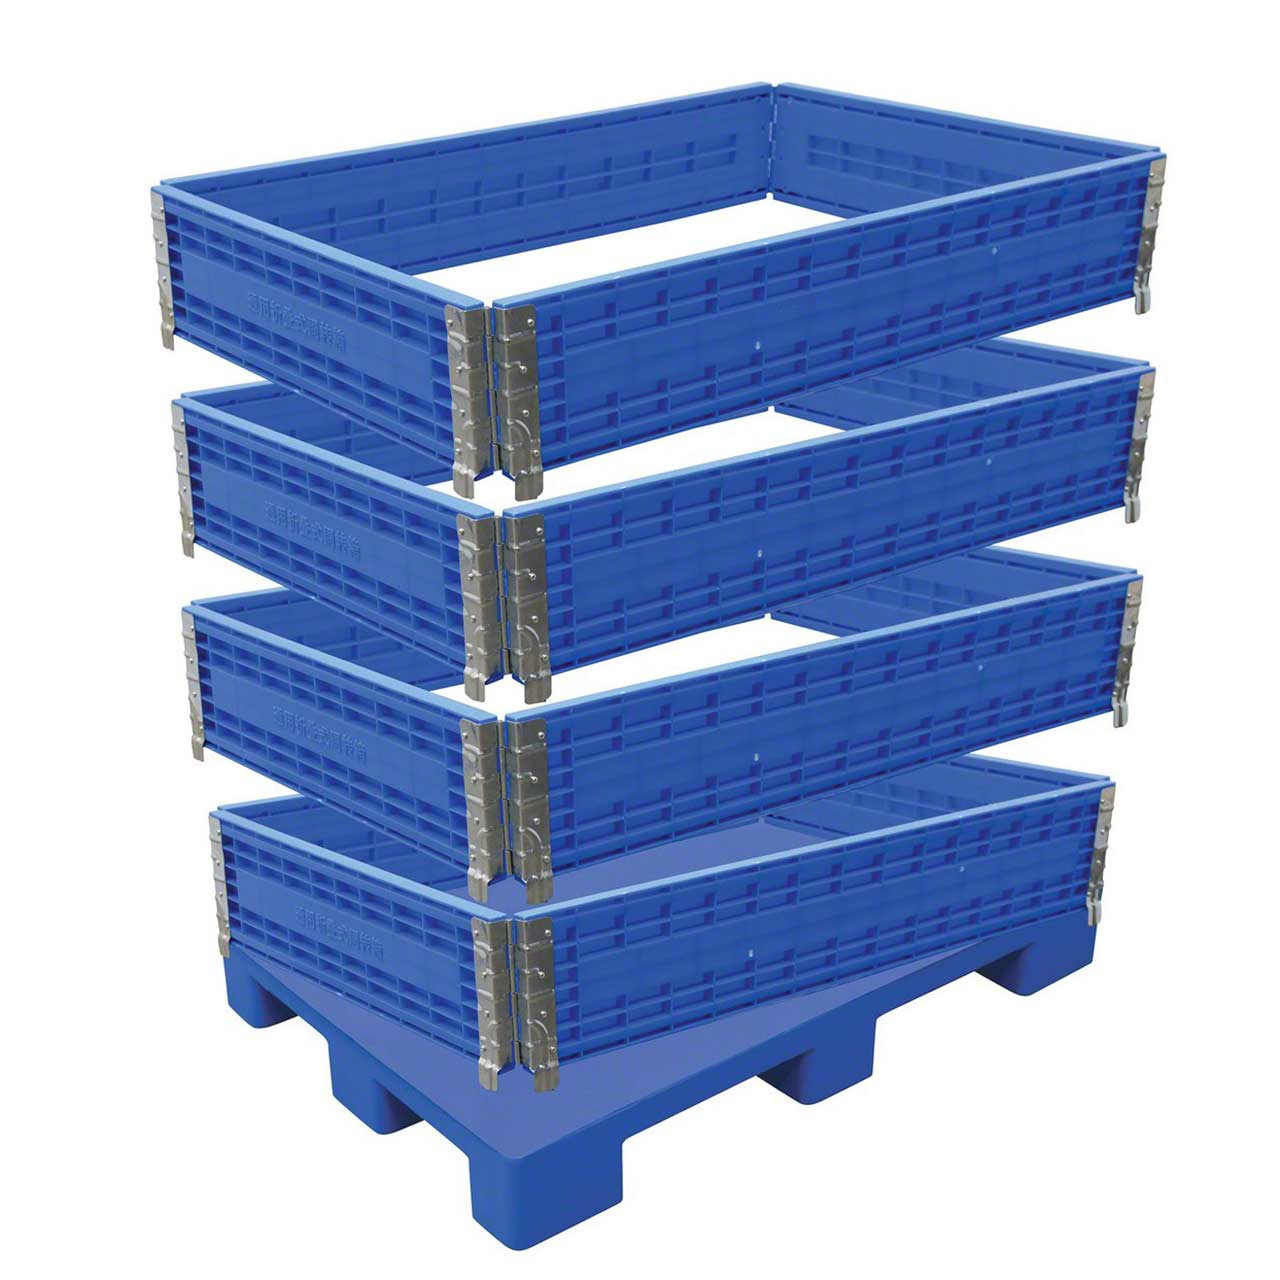 Containers can be from one to four levels high